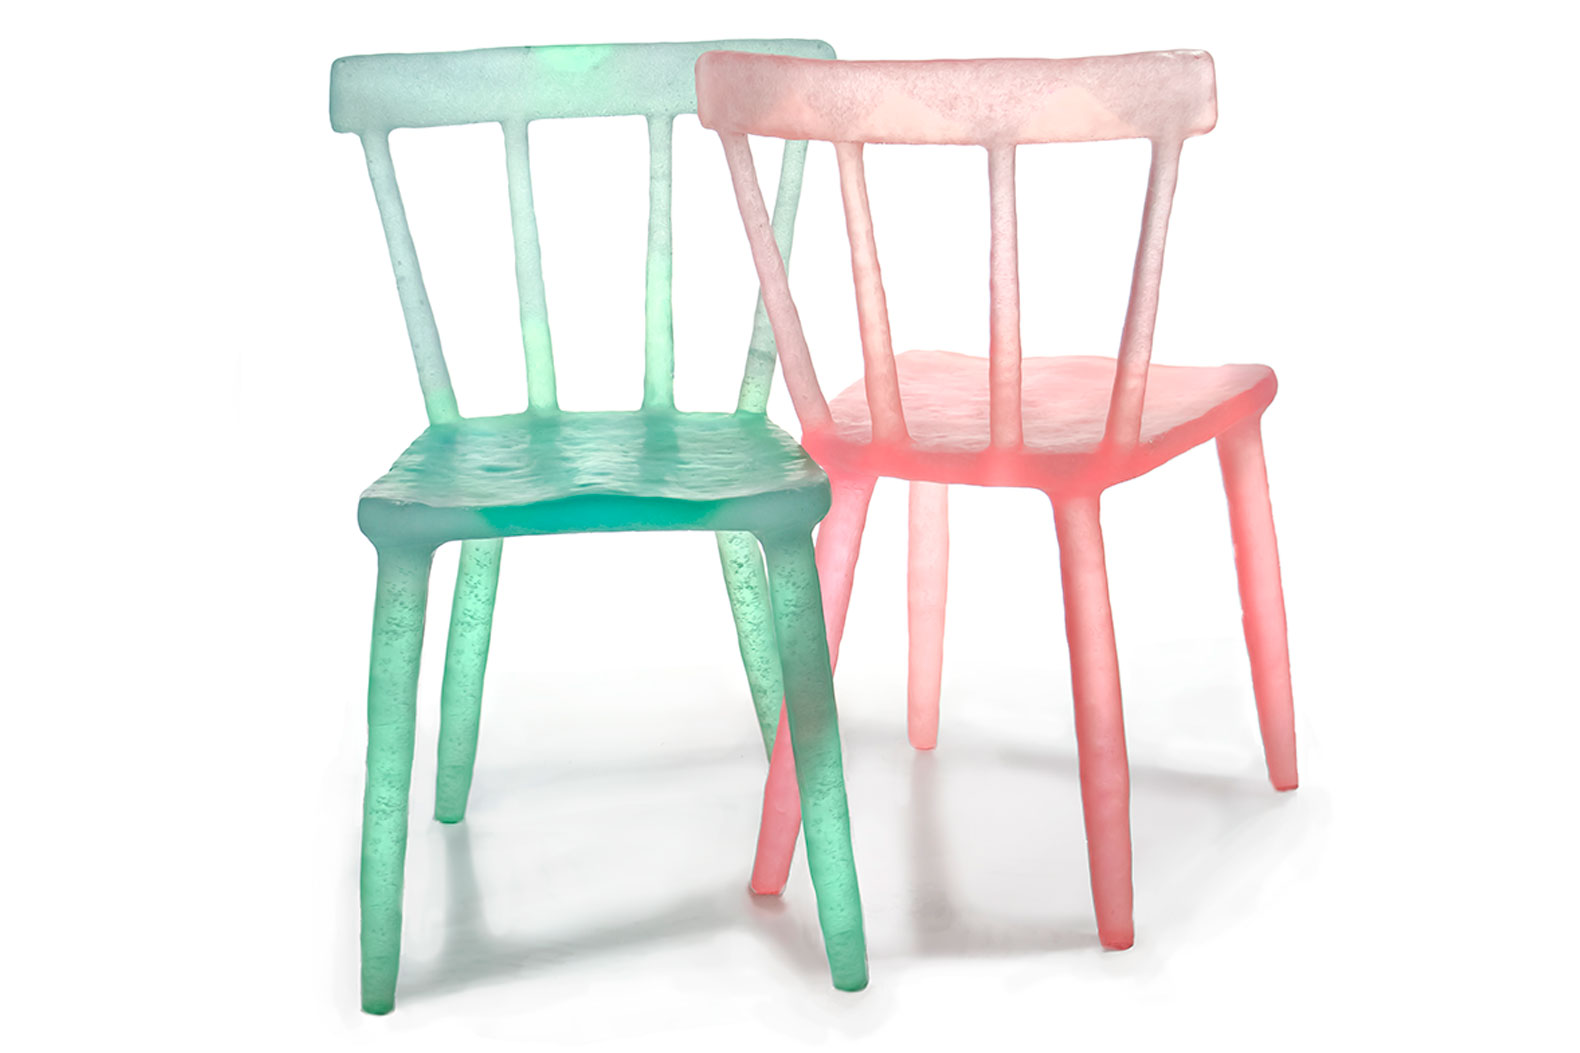 Kim Markel S Candy Colored Recycled Chairs Inject A Juicy Burst Of Fun Into Any Room